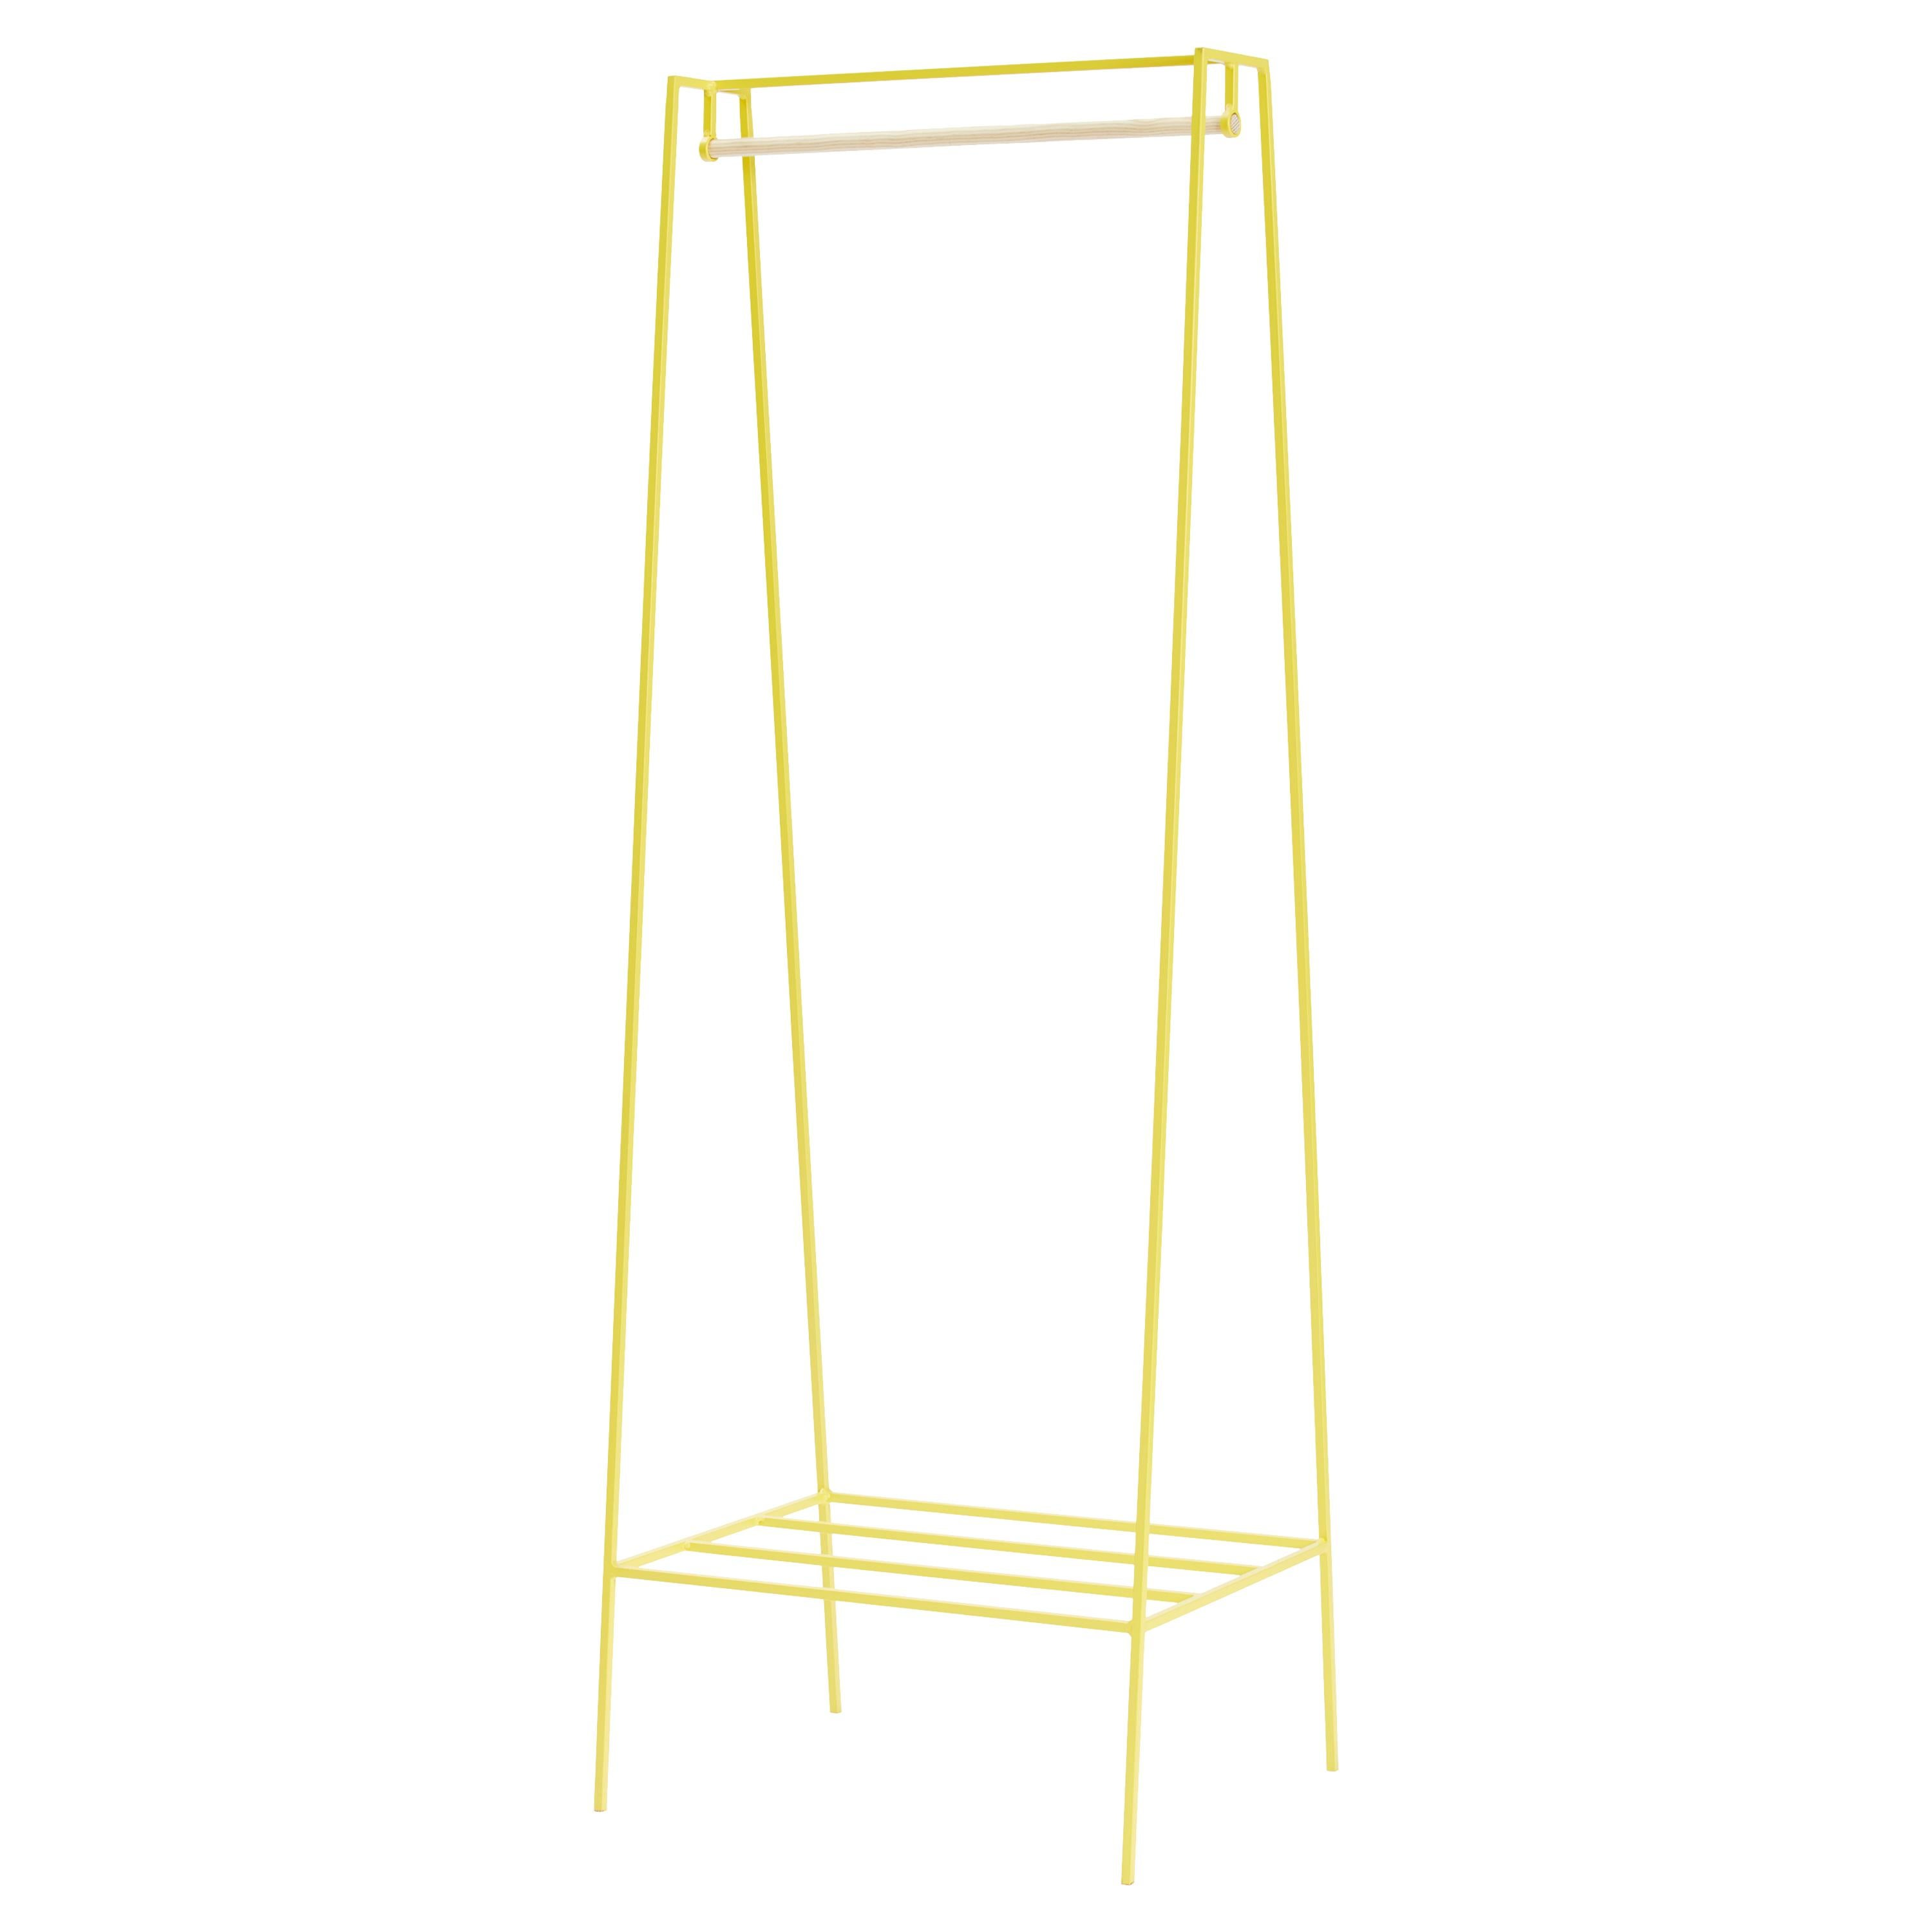 'A' Clothes Rail in Yellow with a Pine Pole